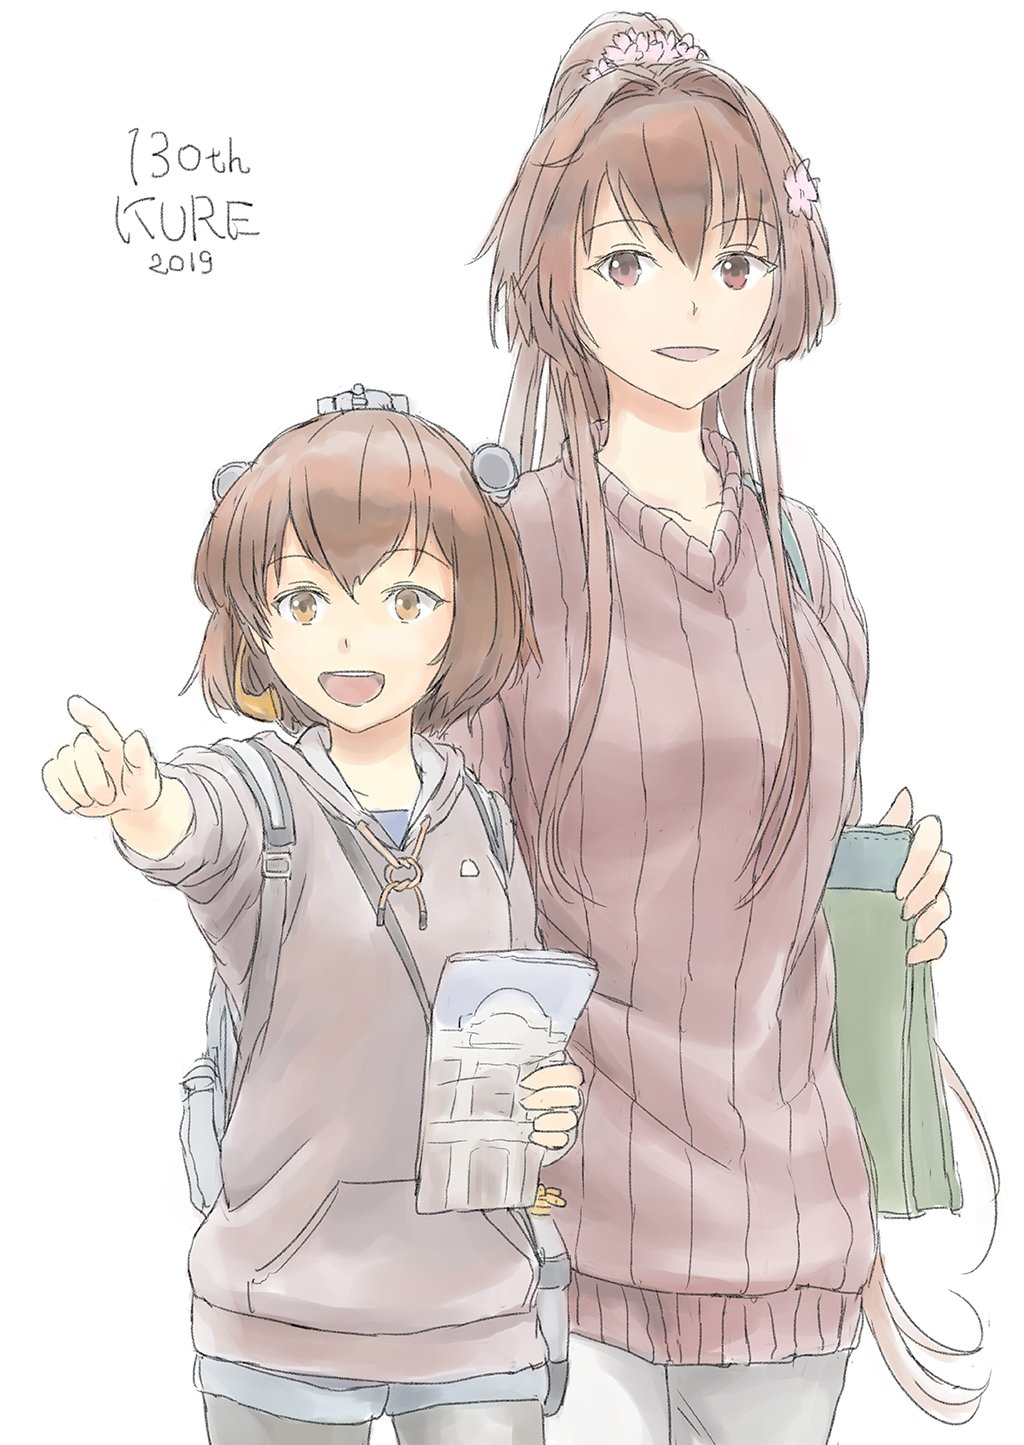 2girls alternate_costume bag black_legwear brown_eyes brown_hair brown_sweater cherry_blossoms commentary_request cowboy_shot flower grey_sweater hair_flower hair_ornament headgear headset height_difference highres hood hooded_sweater hoodie kantai_collection long_hair multiple_girls open_mouth pamphlet pantyhose pointing ponytail ribbed_sweater round_teeth short_hair simple_background smile speaking_tube_headset sweater taruya teeth upper_teeth white_background yamato_(kantai_collection) yukikaze_(kantai_collection)